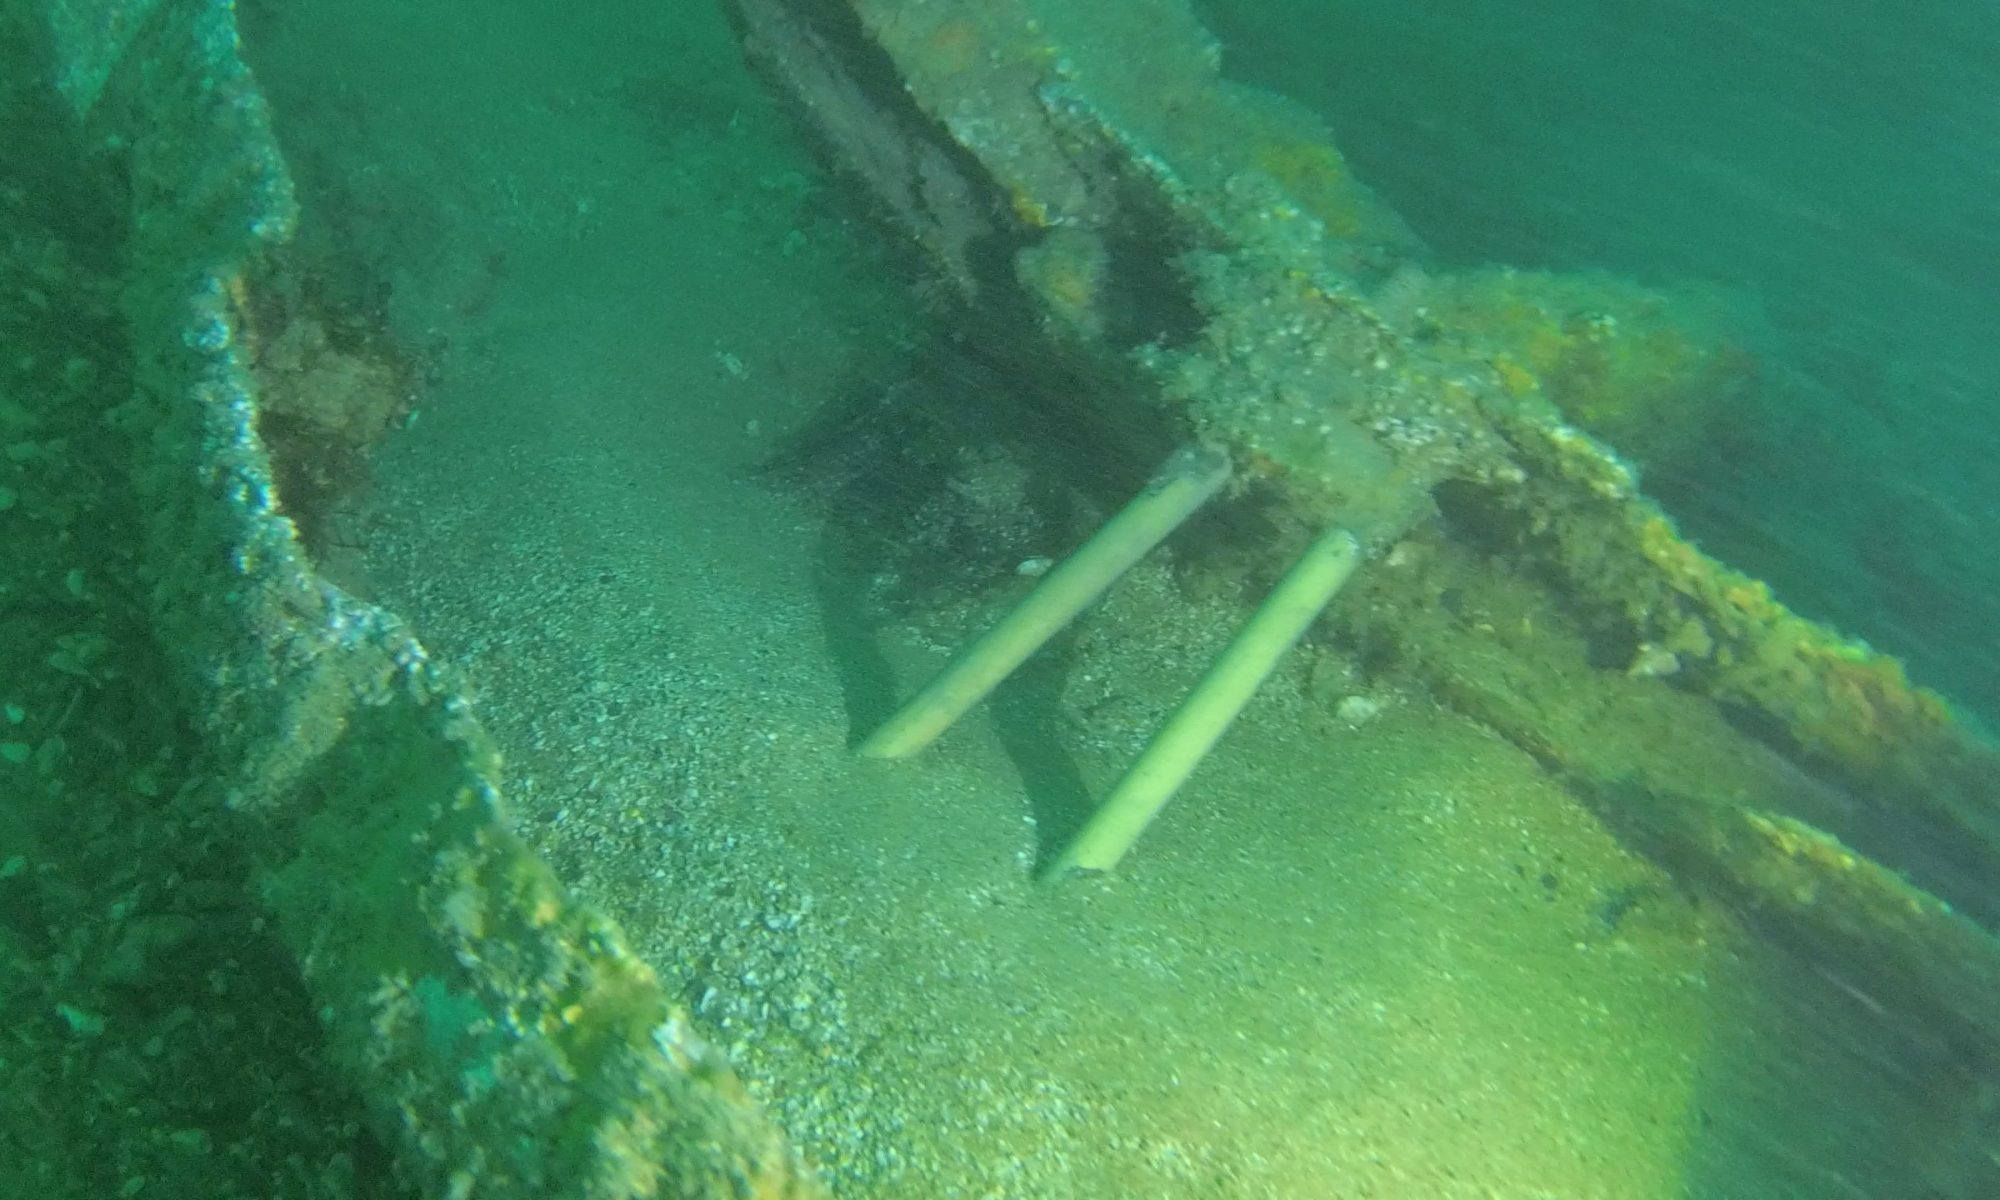 The Pin Wreck out of Kimmeridge image